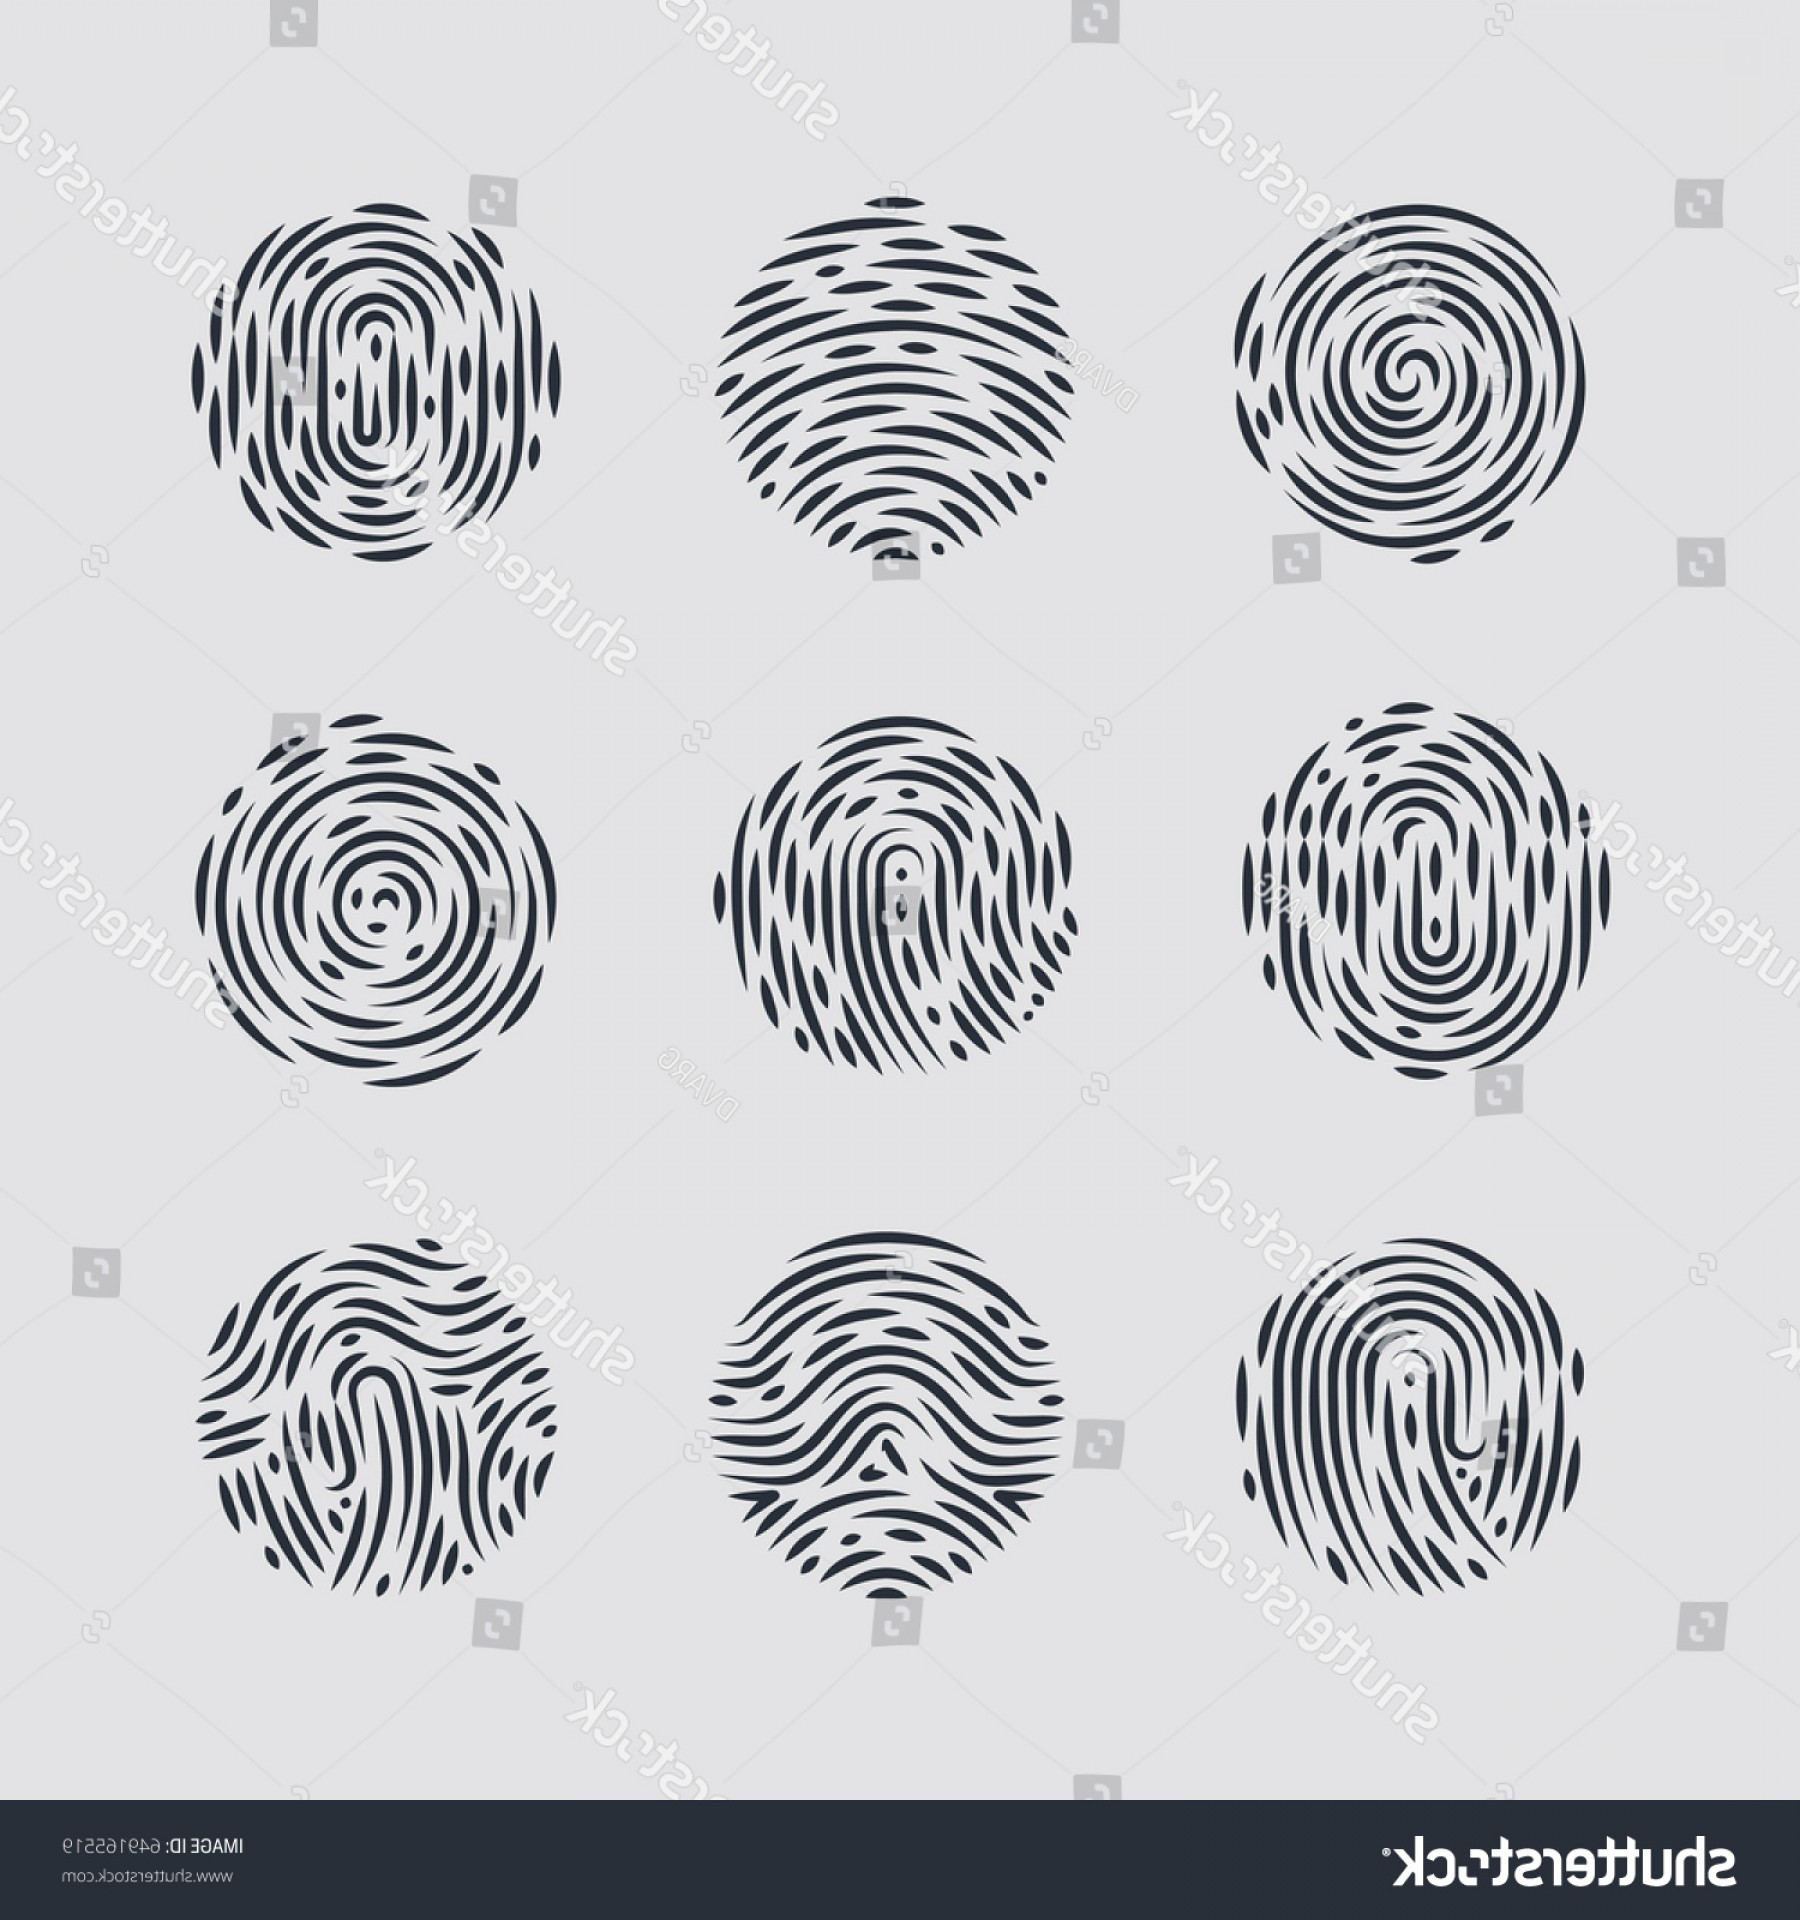 Security Vector Patterns: Abstract Round Fingerprint Patterns Identity Person